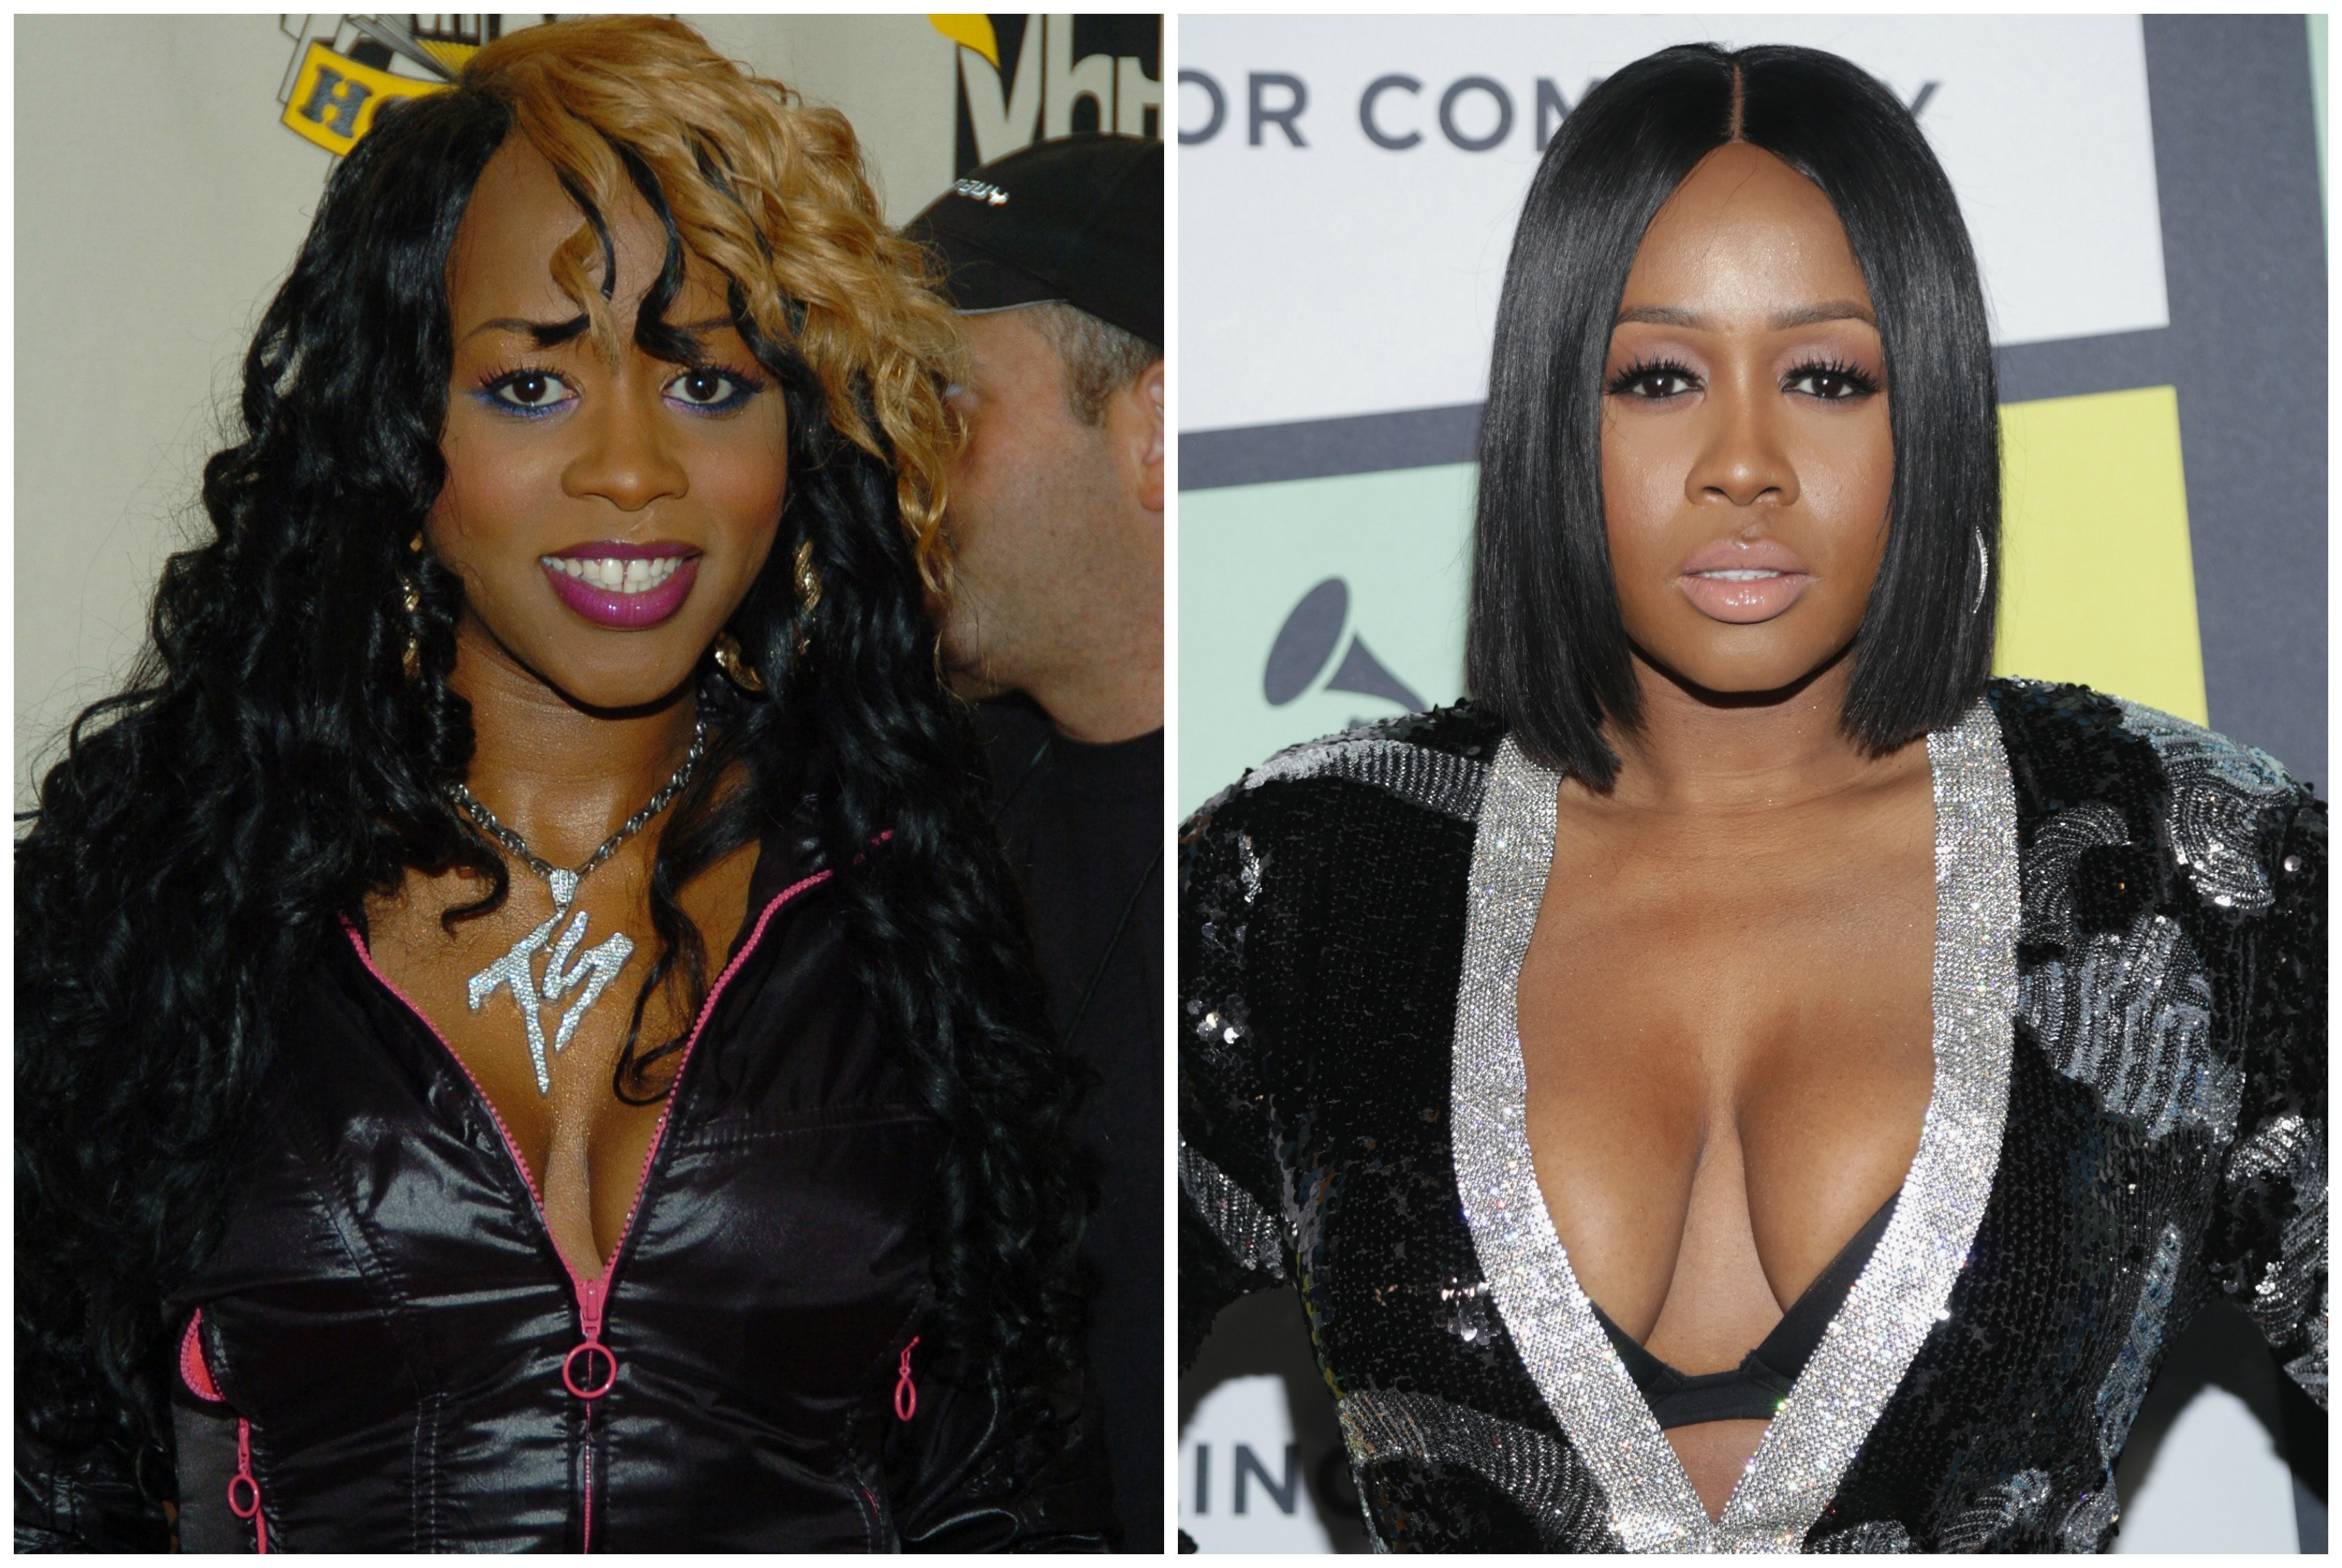 remy ma before and after plastic surgery photo - 1